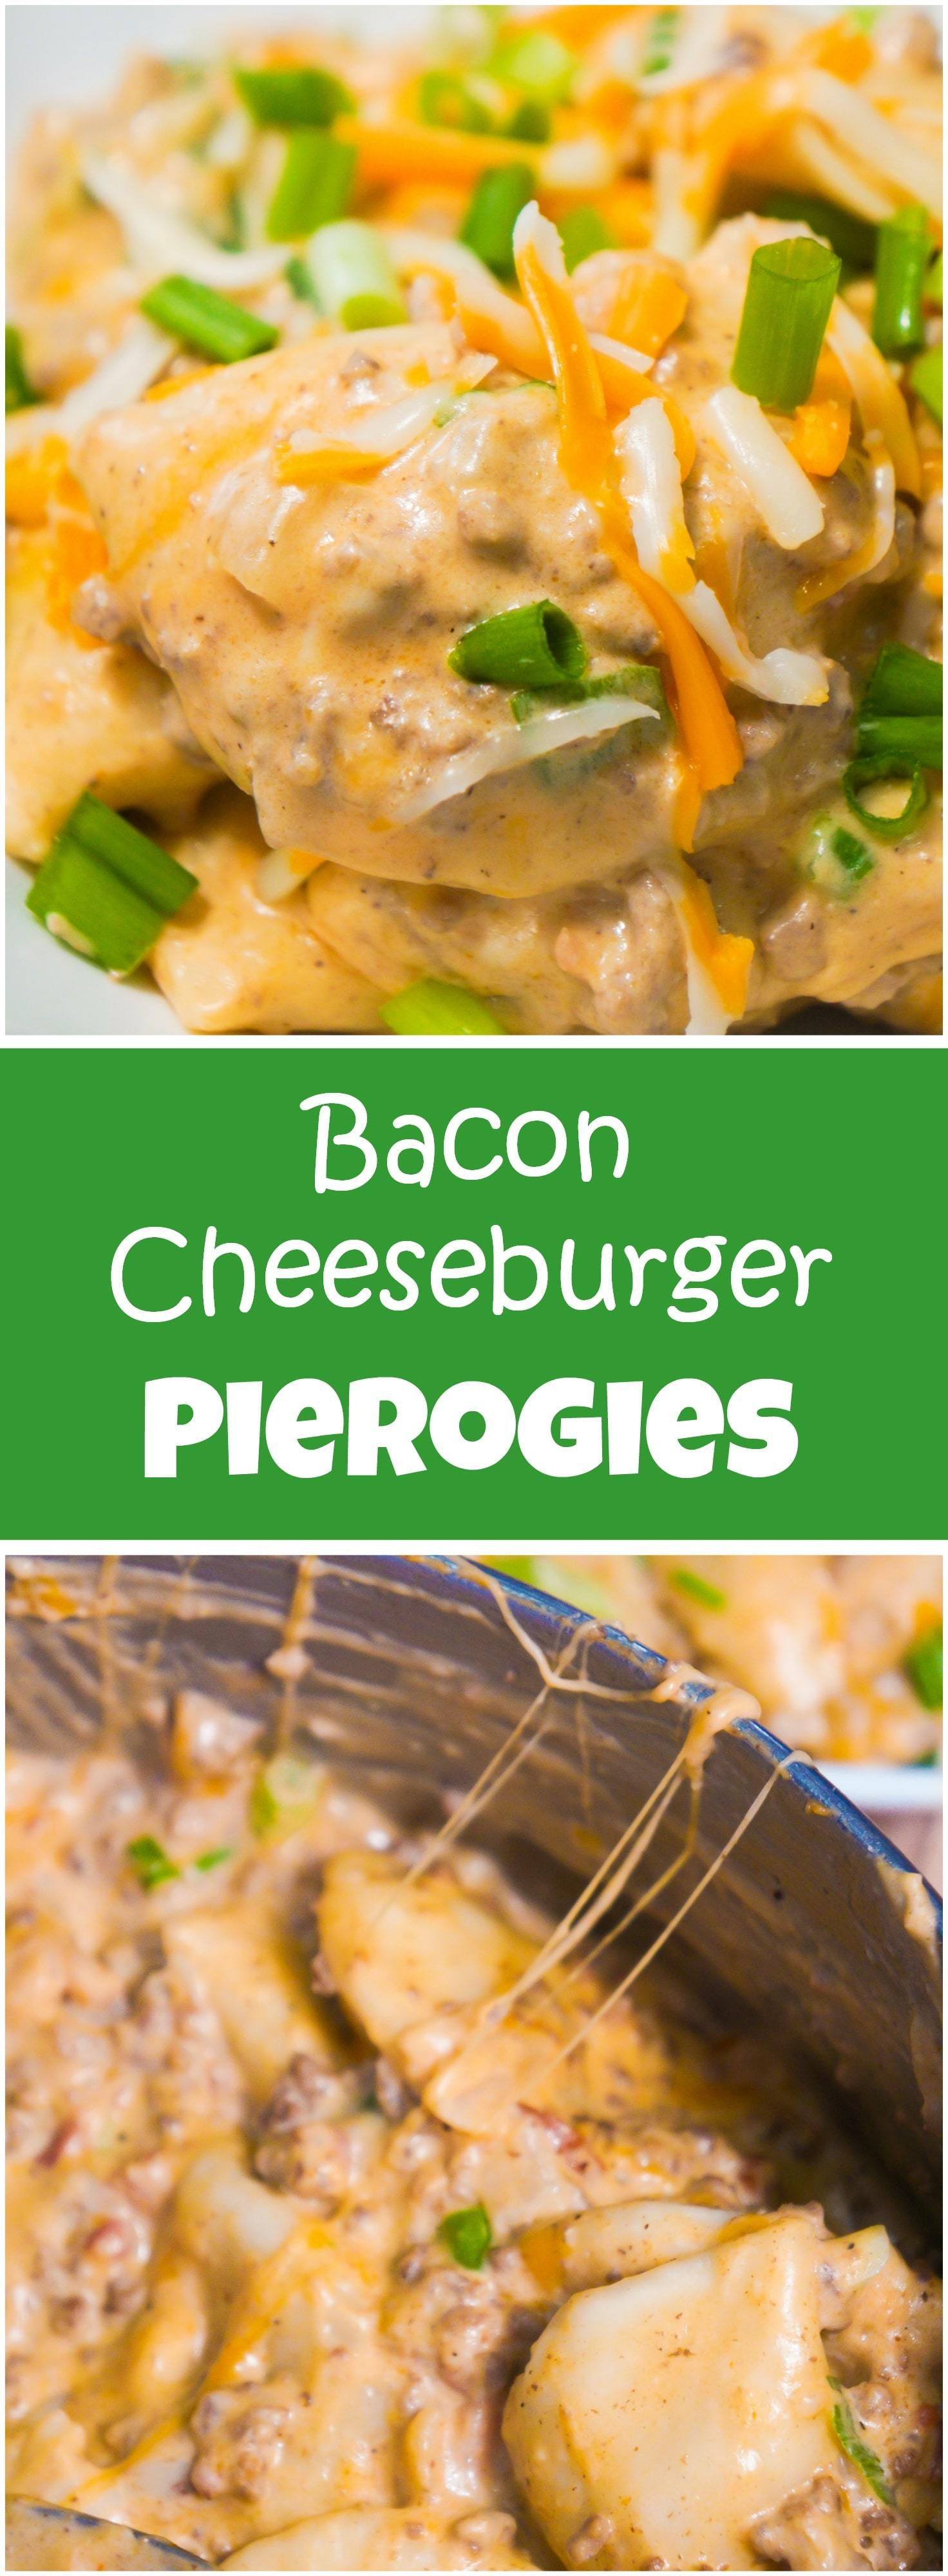 Bacon Cheeseburger Pierogies Are The Perfect Comfort Food Delicious Pockets Of Mashed Potatoes